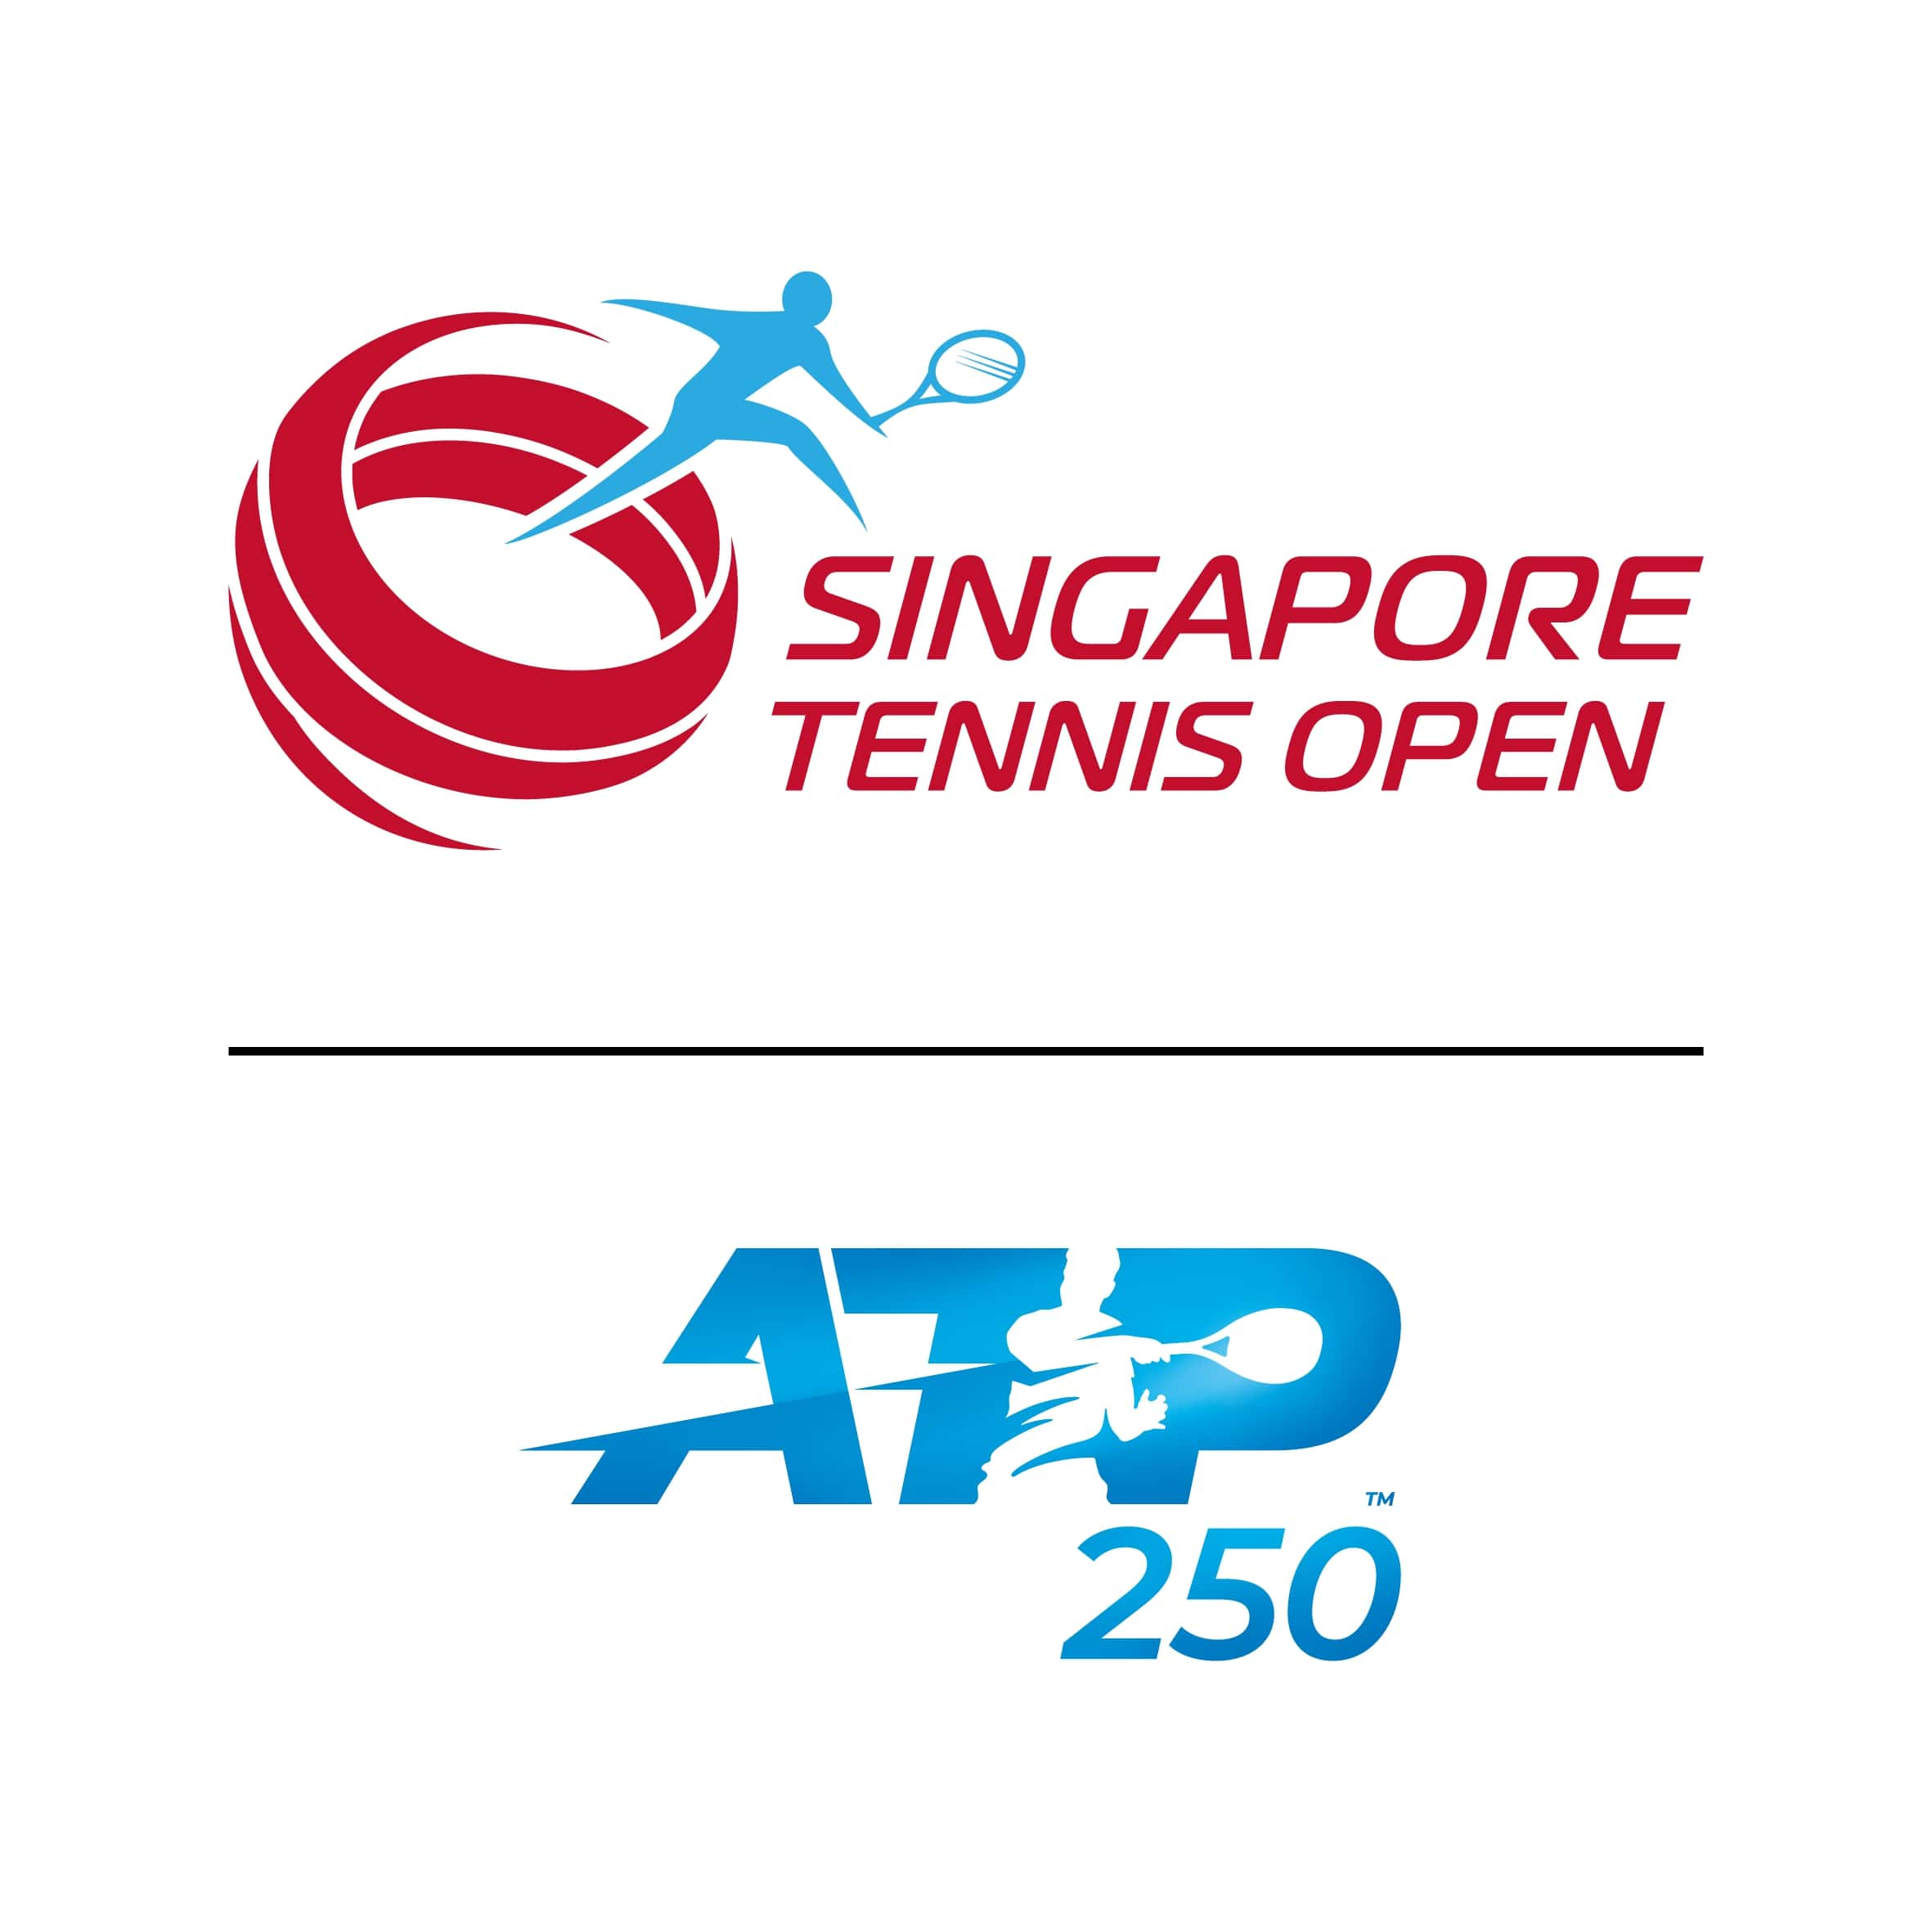 Singapore Tennis Open ready to put safety first